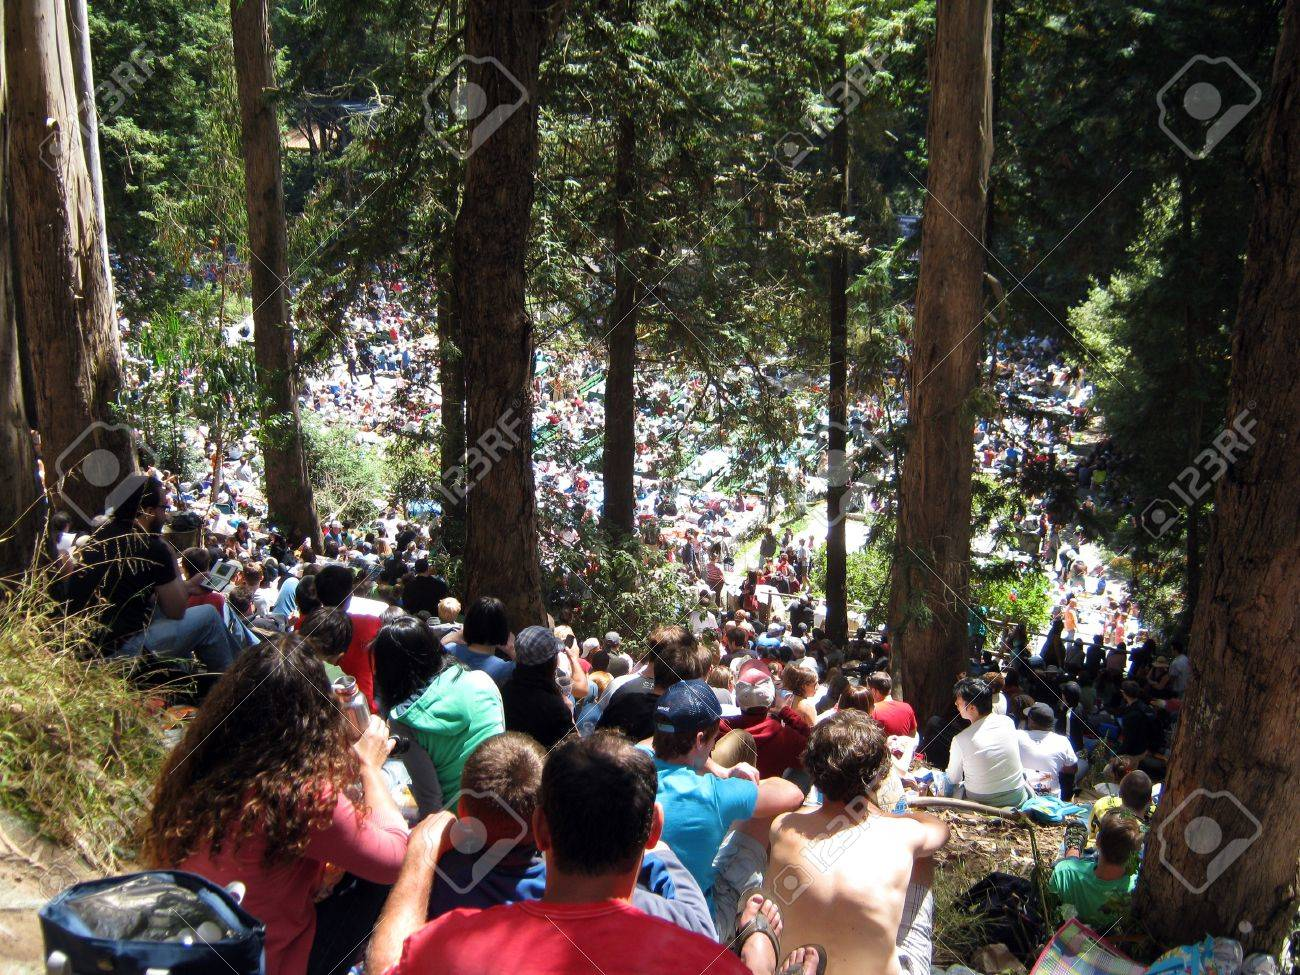 SAN FRANCISCO - AUGUST 22: 73rd Stern Grove Festival: Crowd of people watch show from up in woods at outdoor concert. August 22, 2010 in San Francisco CA. Stock Photo - 18306250